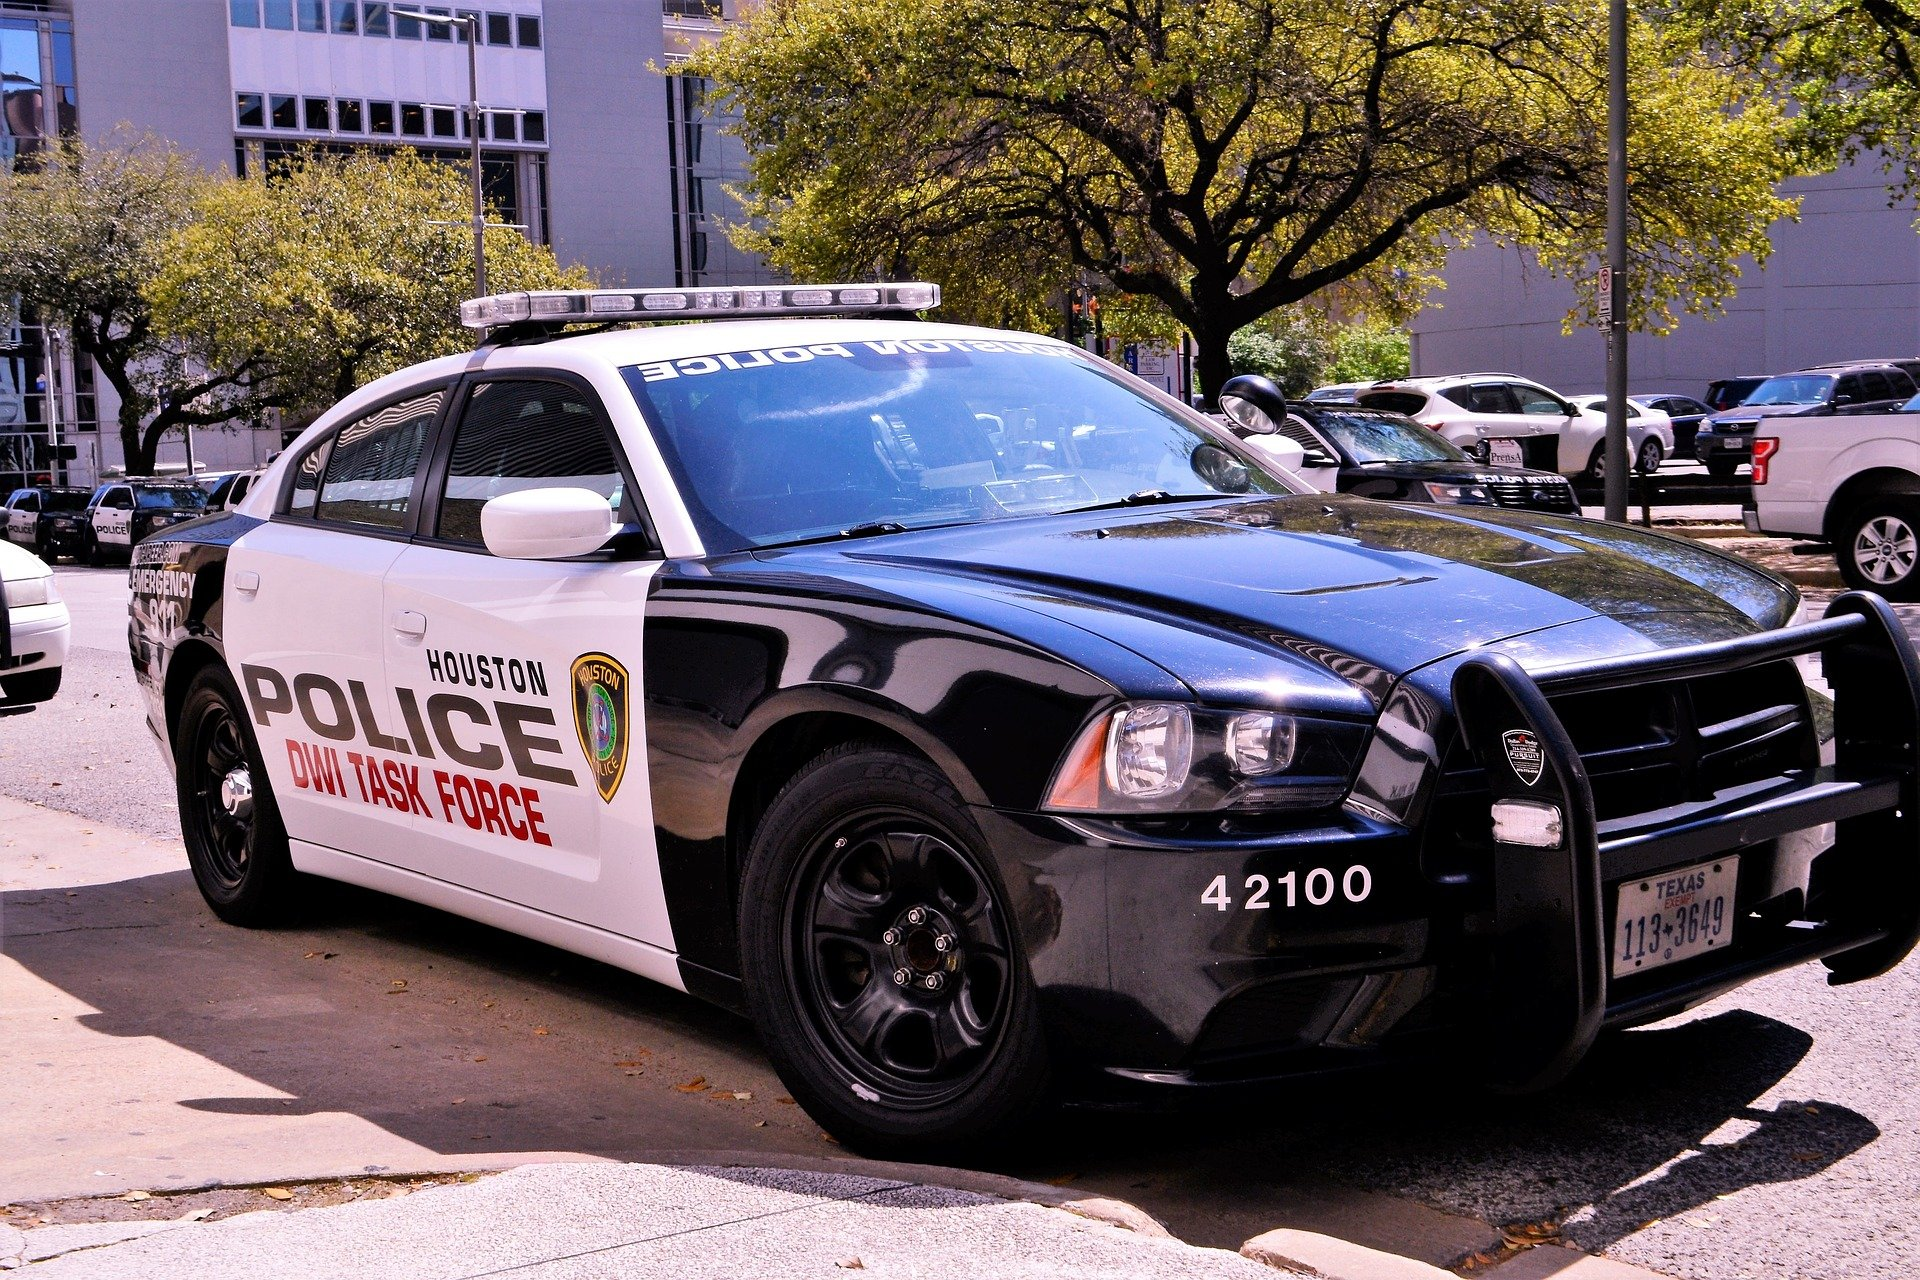 Pictured - A police squad vehicle | Source: Pixabay